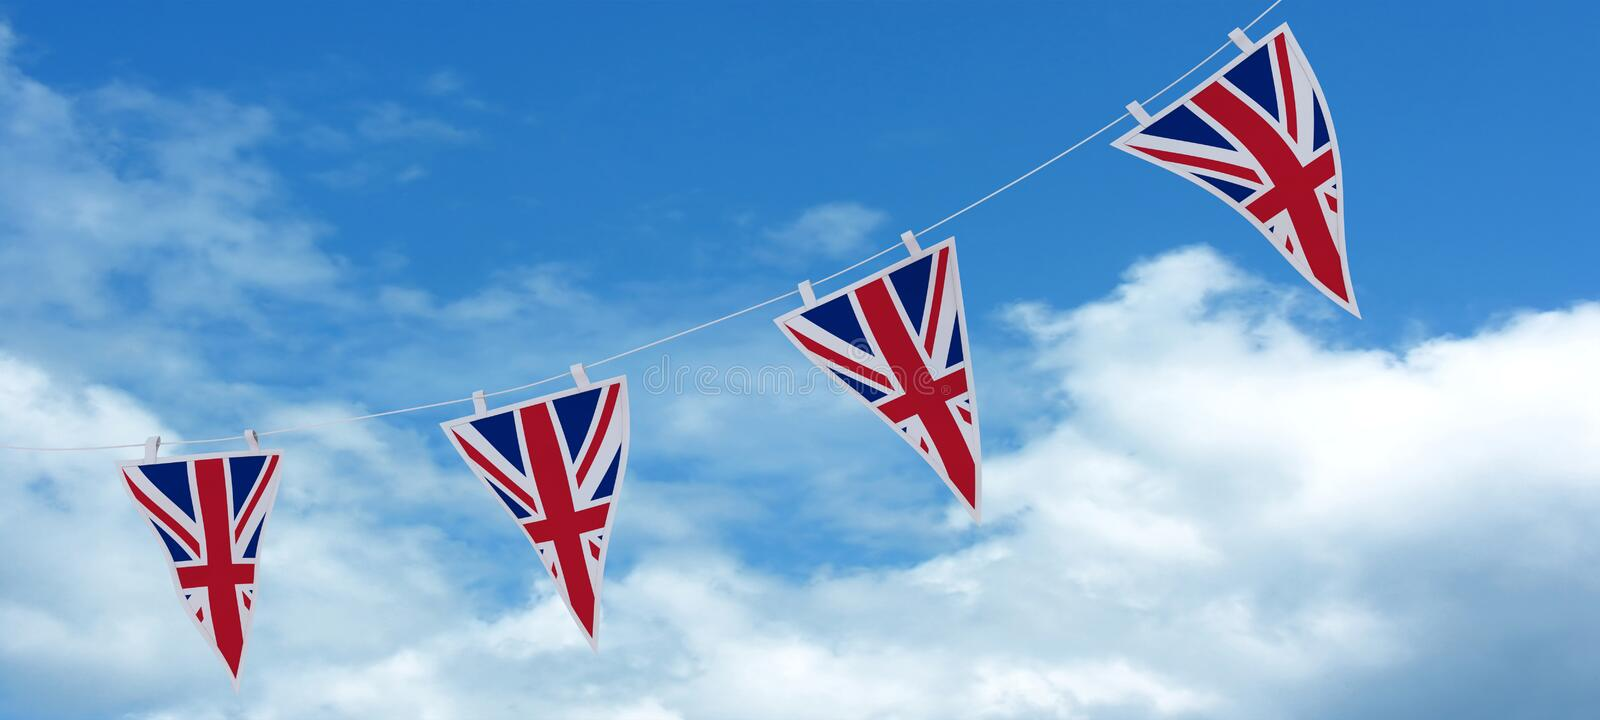 Download Union Jack Bunting And Banners Stock Illustration - Image: 24941892